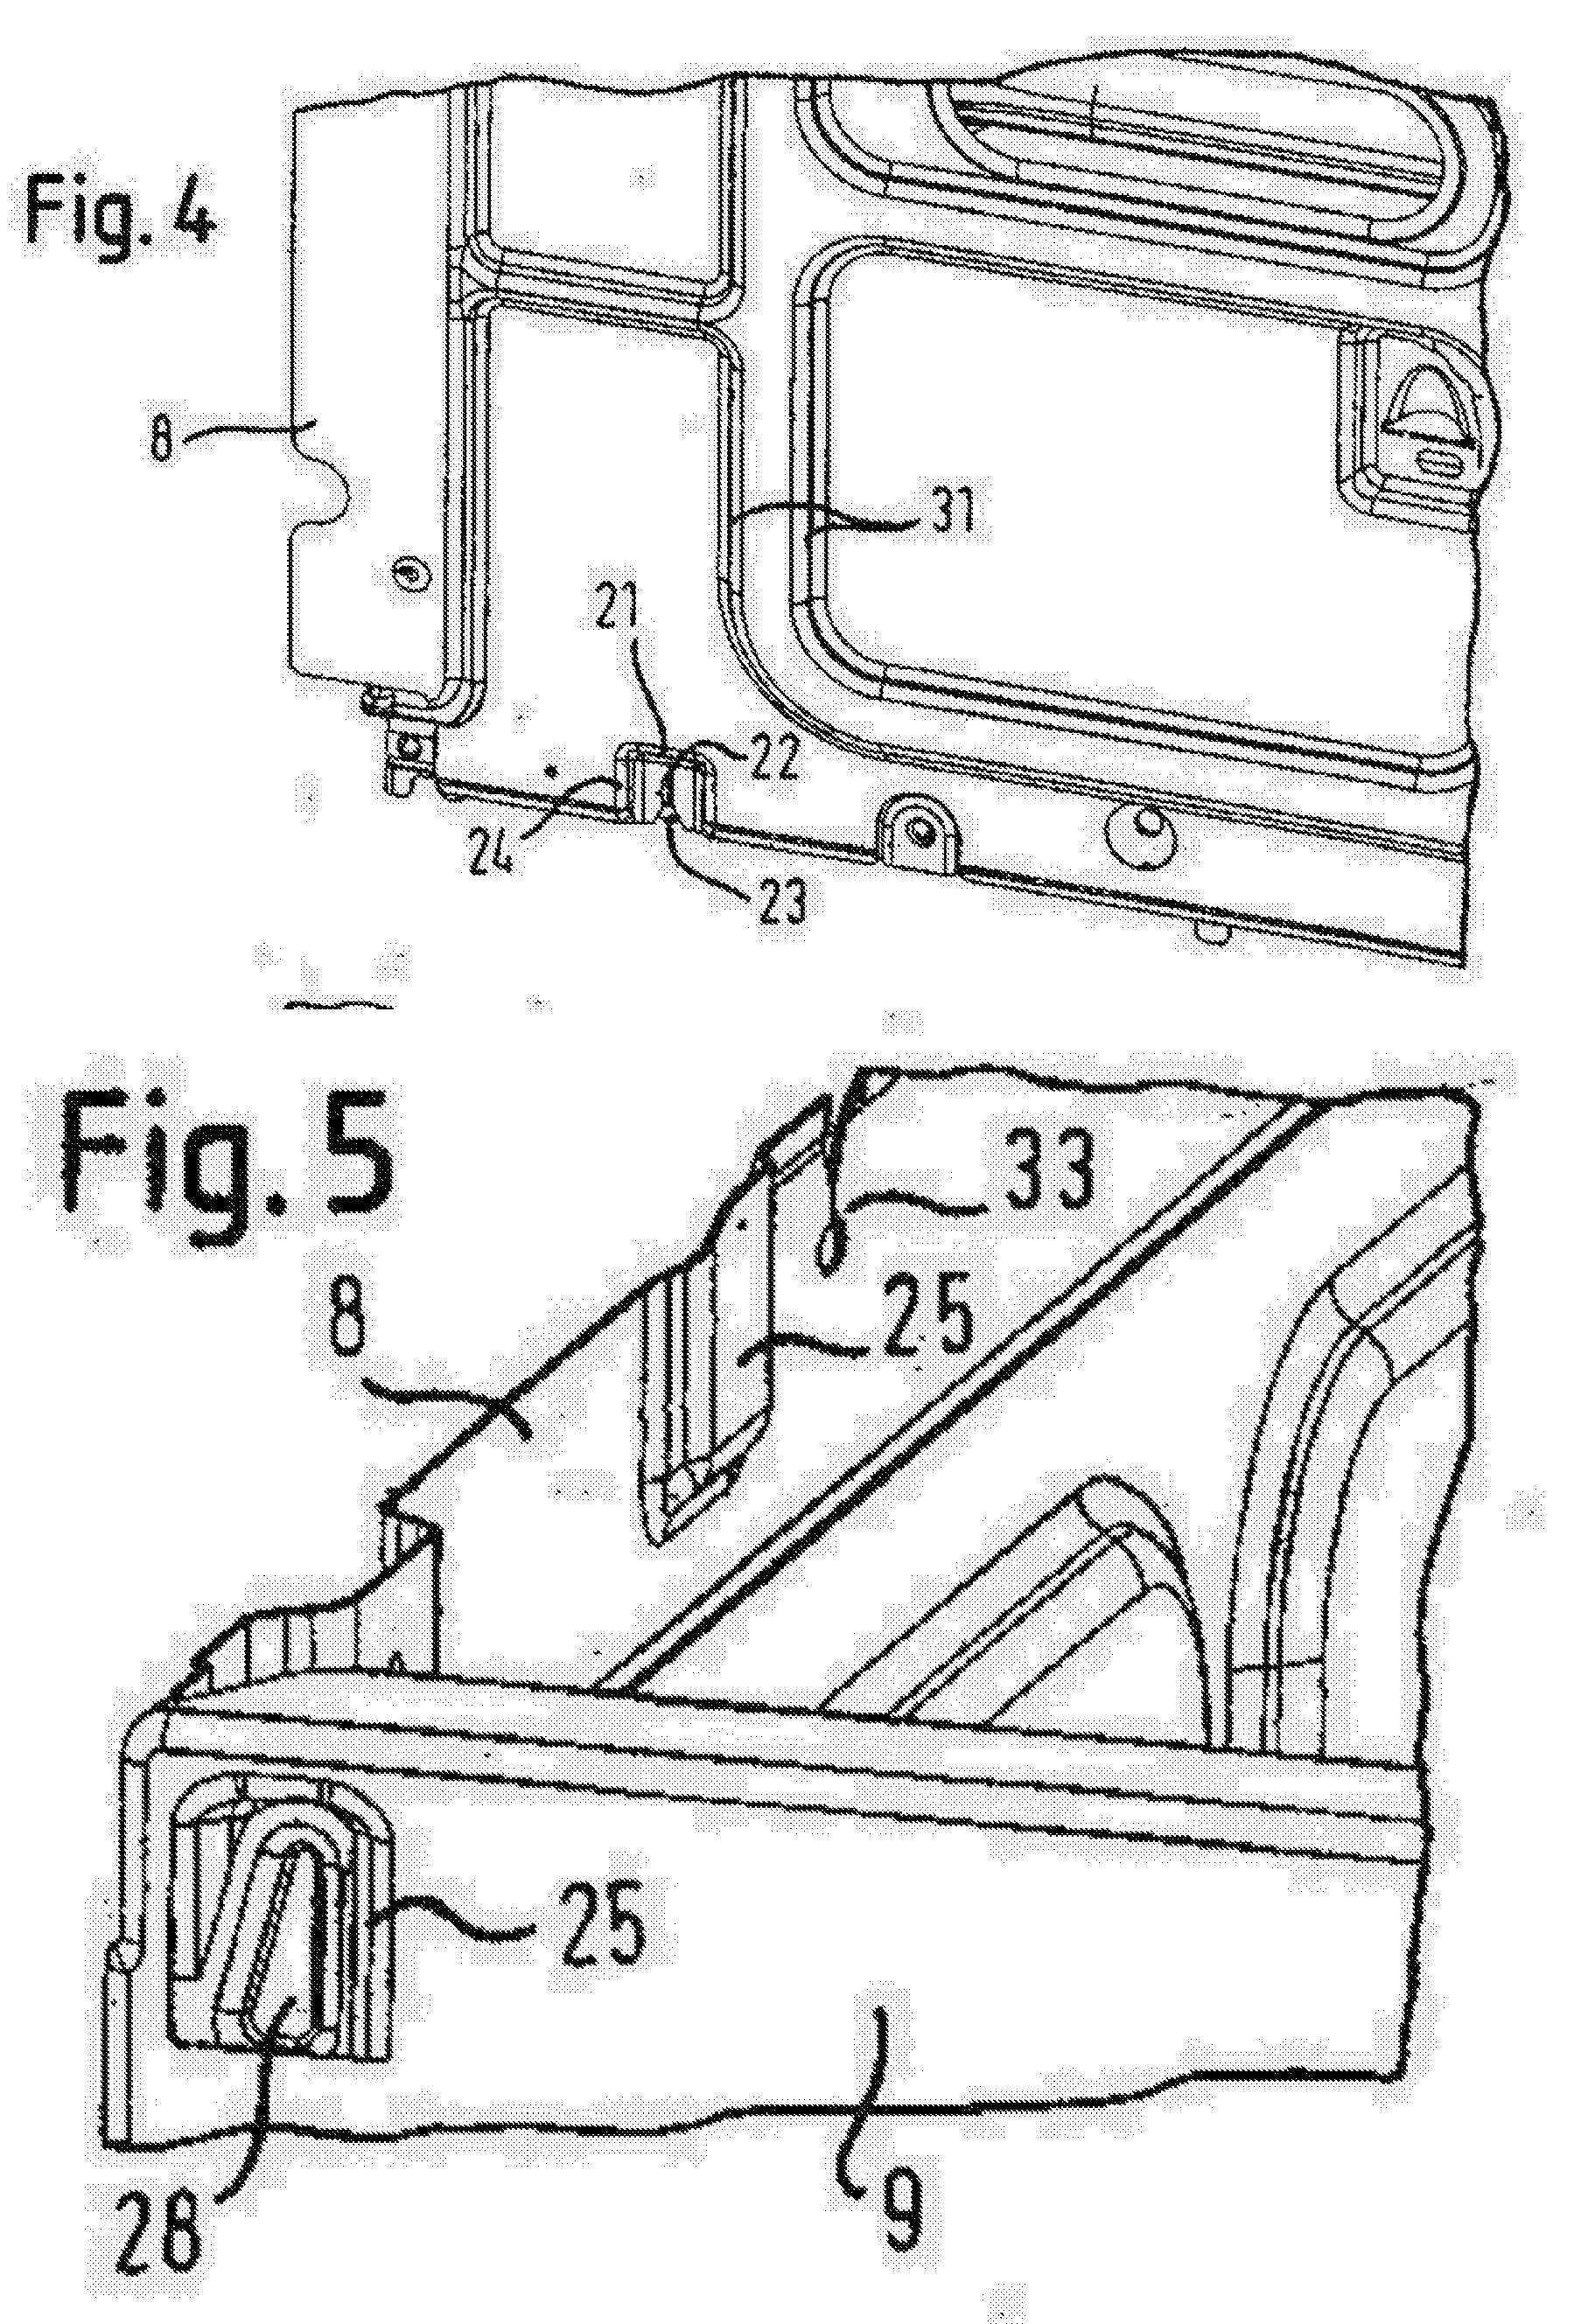 Patent EP1643189A2 - Oven for cooking of food - Google Patents